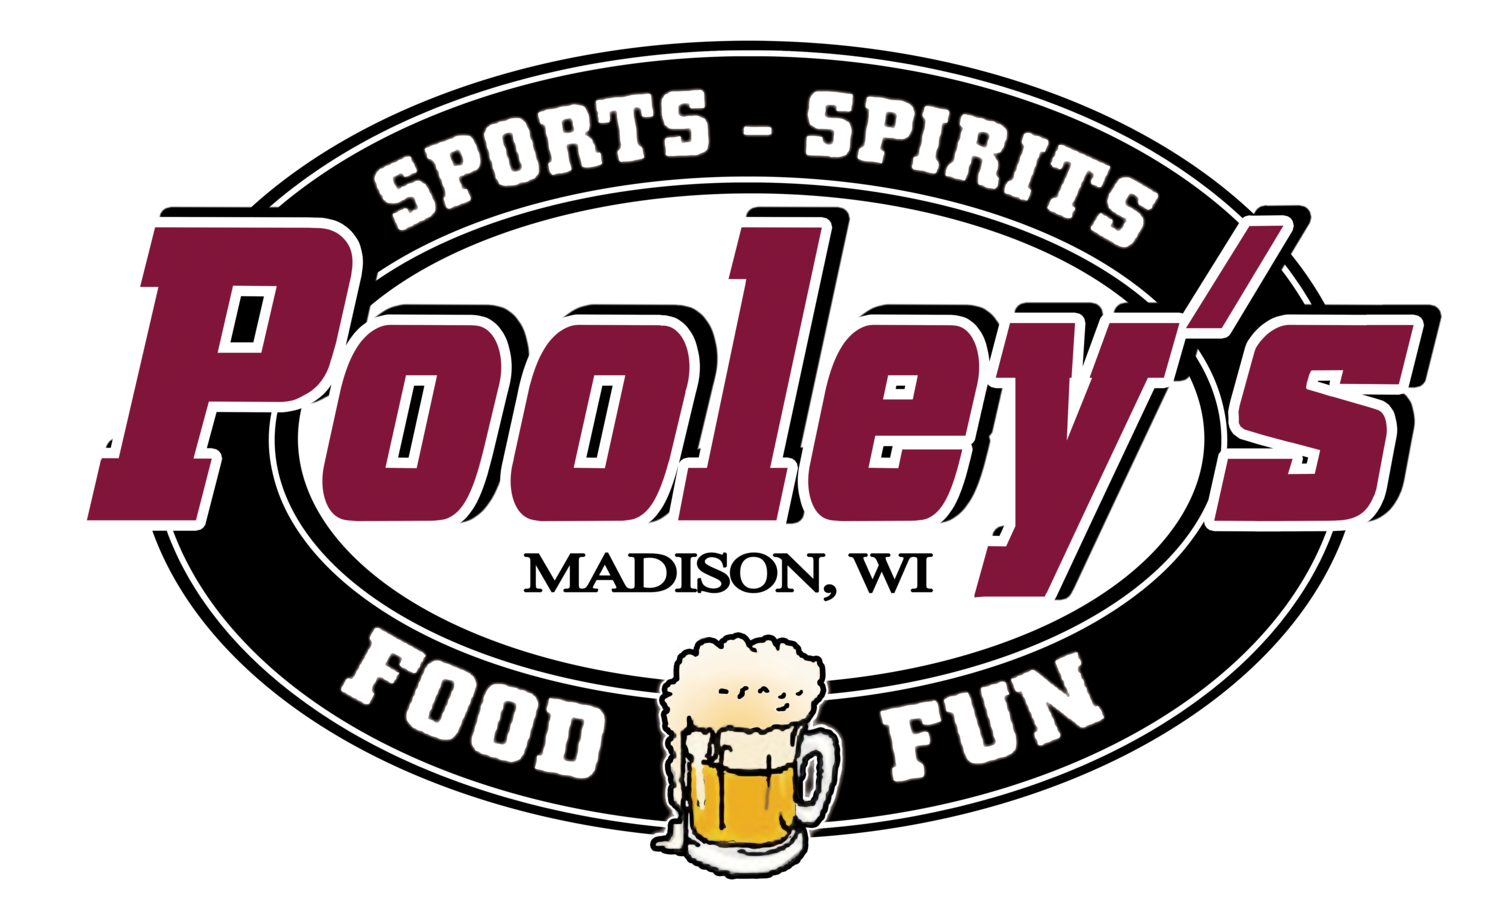 Madison clip t bar. Pooley s sports and